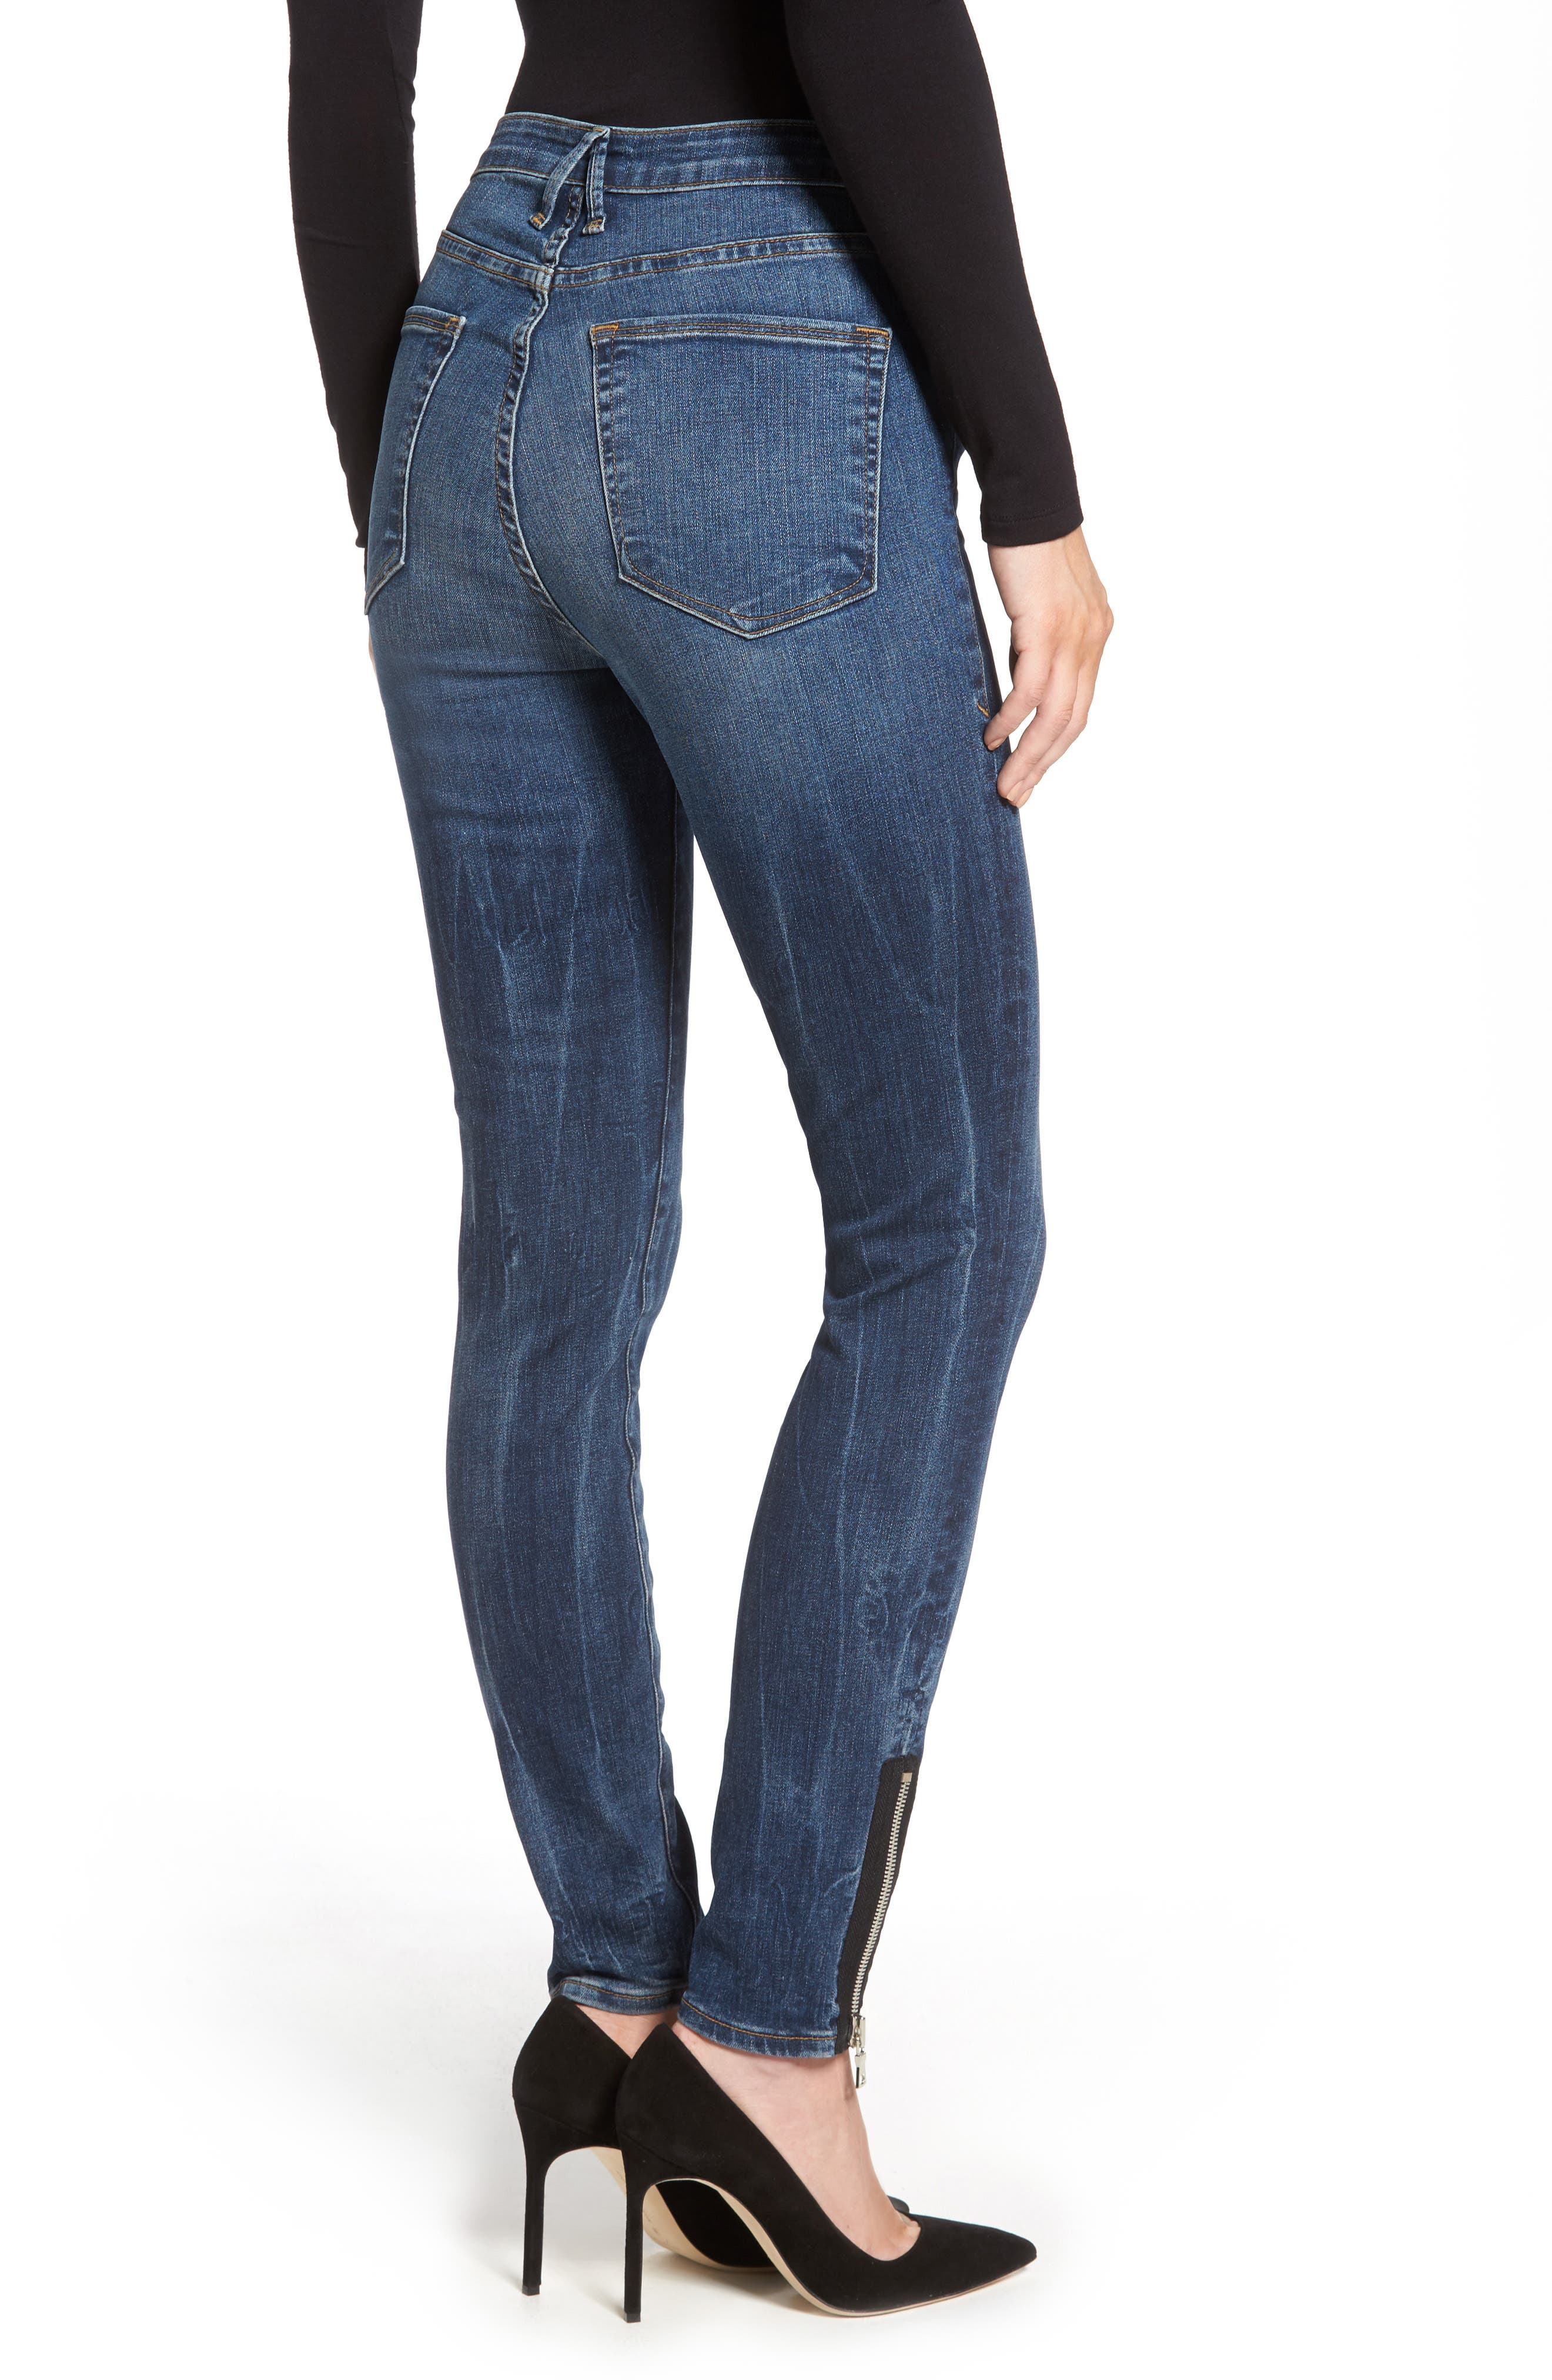 Alternate Image 2  - Good American Good Waist High Rise Ankle Jeans (Blue 076) (Regular & Plus Size)